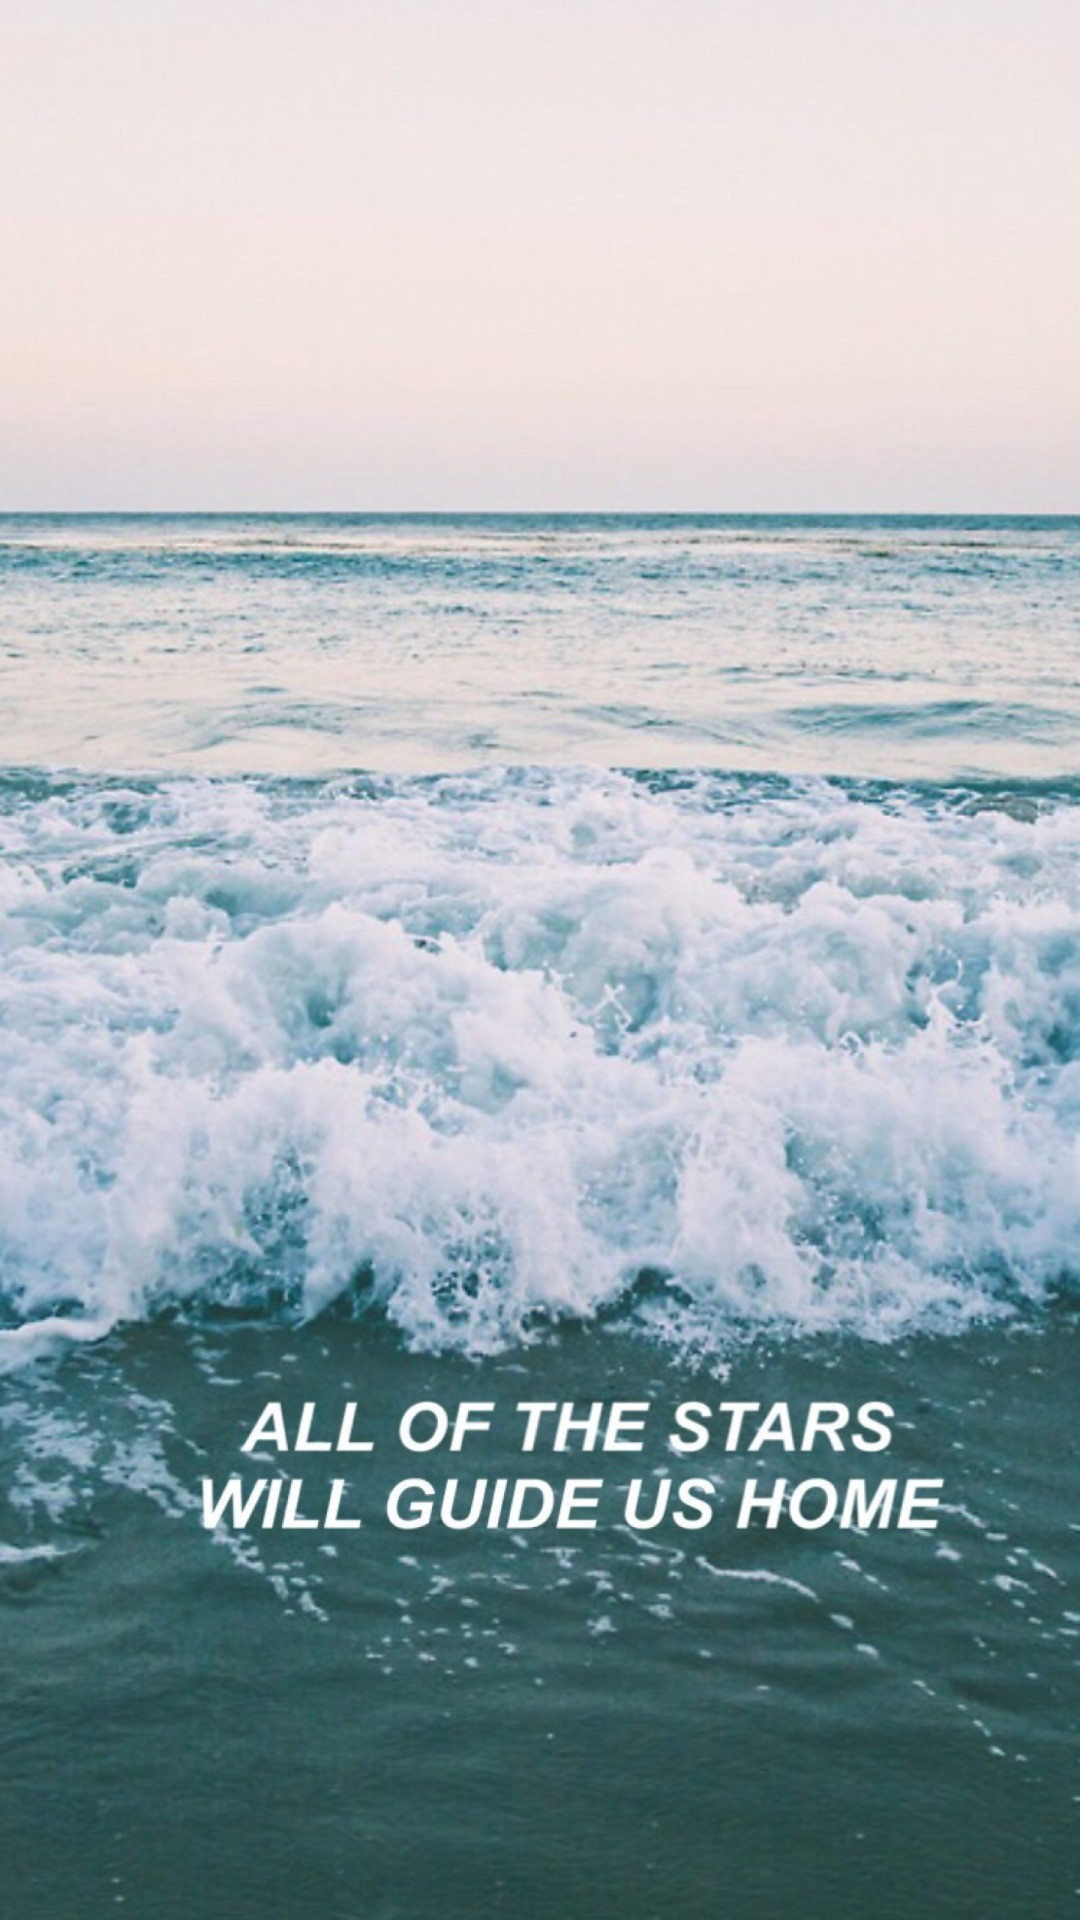 all of the stars ed sheeran lyrics lockscreens ed sheeran ed sheeran  lockscreens lockscreens ed sheeran